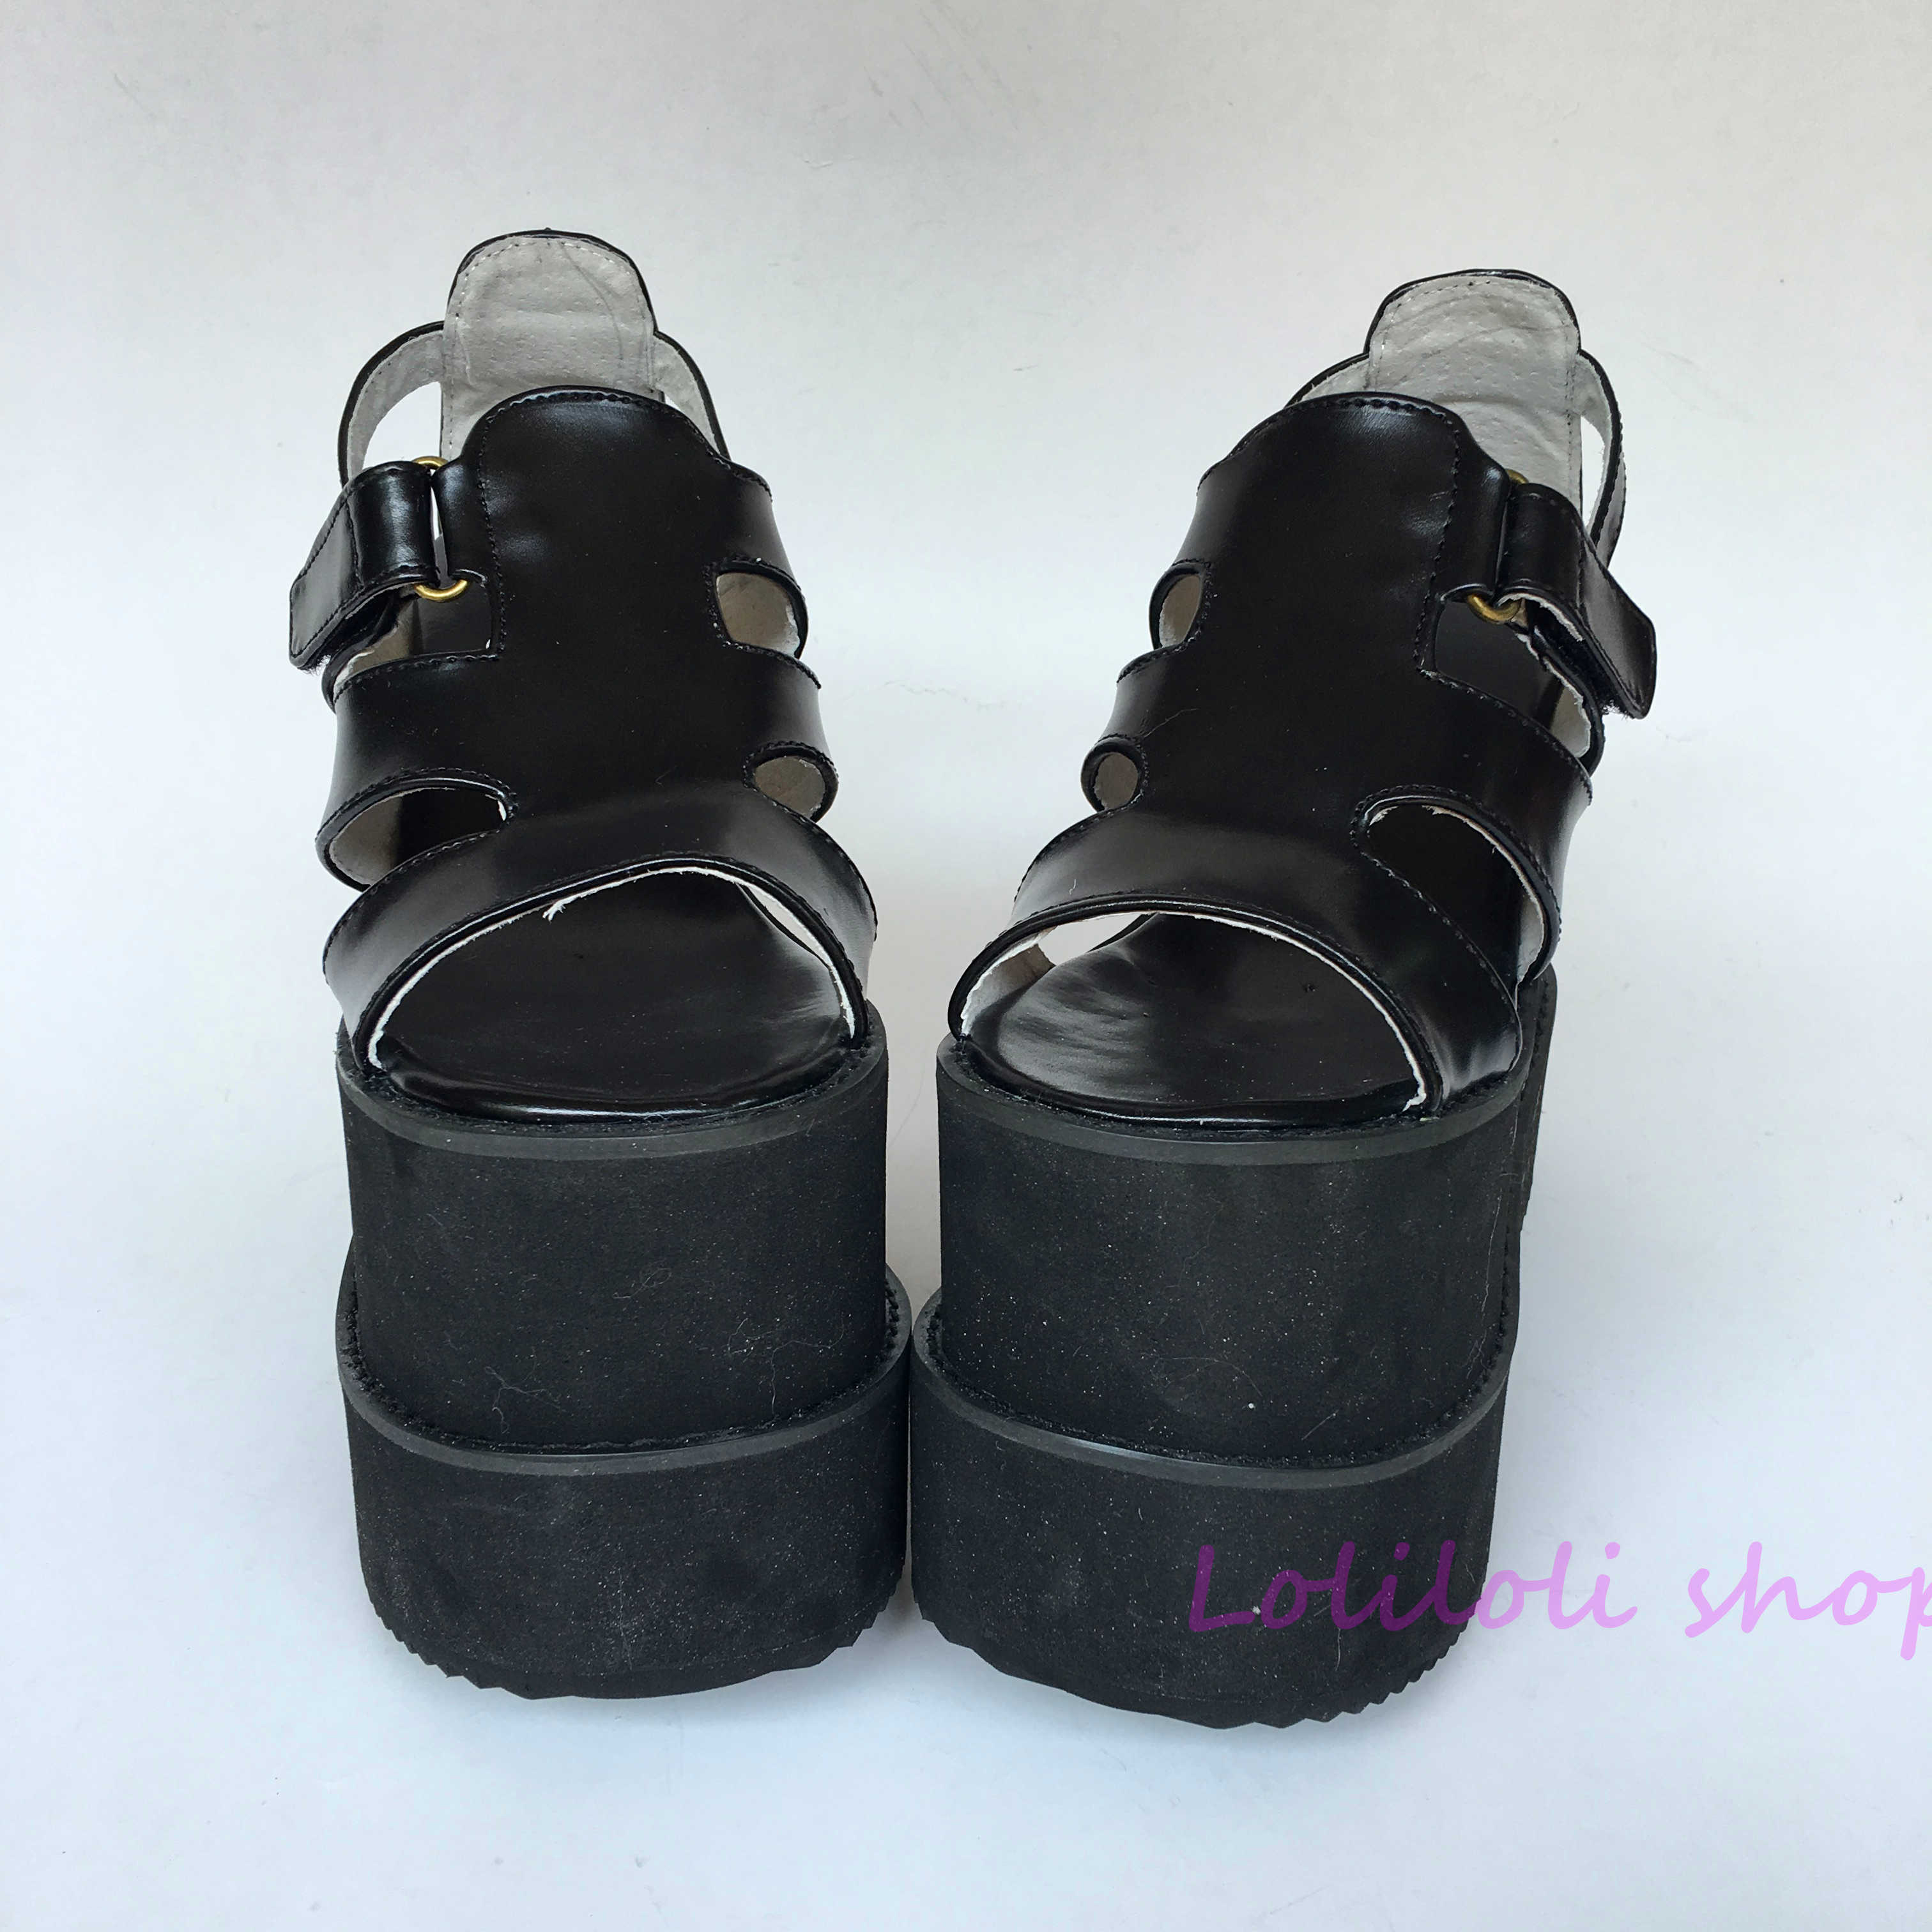 Princess sweet black lolita shose Lolilloliyoyo antaina gothic lolita shoes Muffin slippers sandals Drawstring Customized 5130